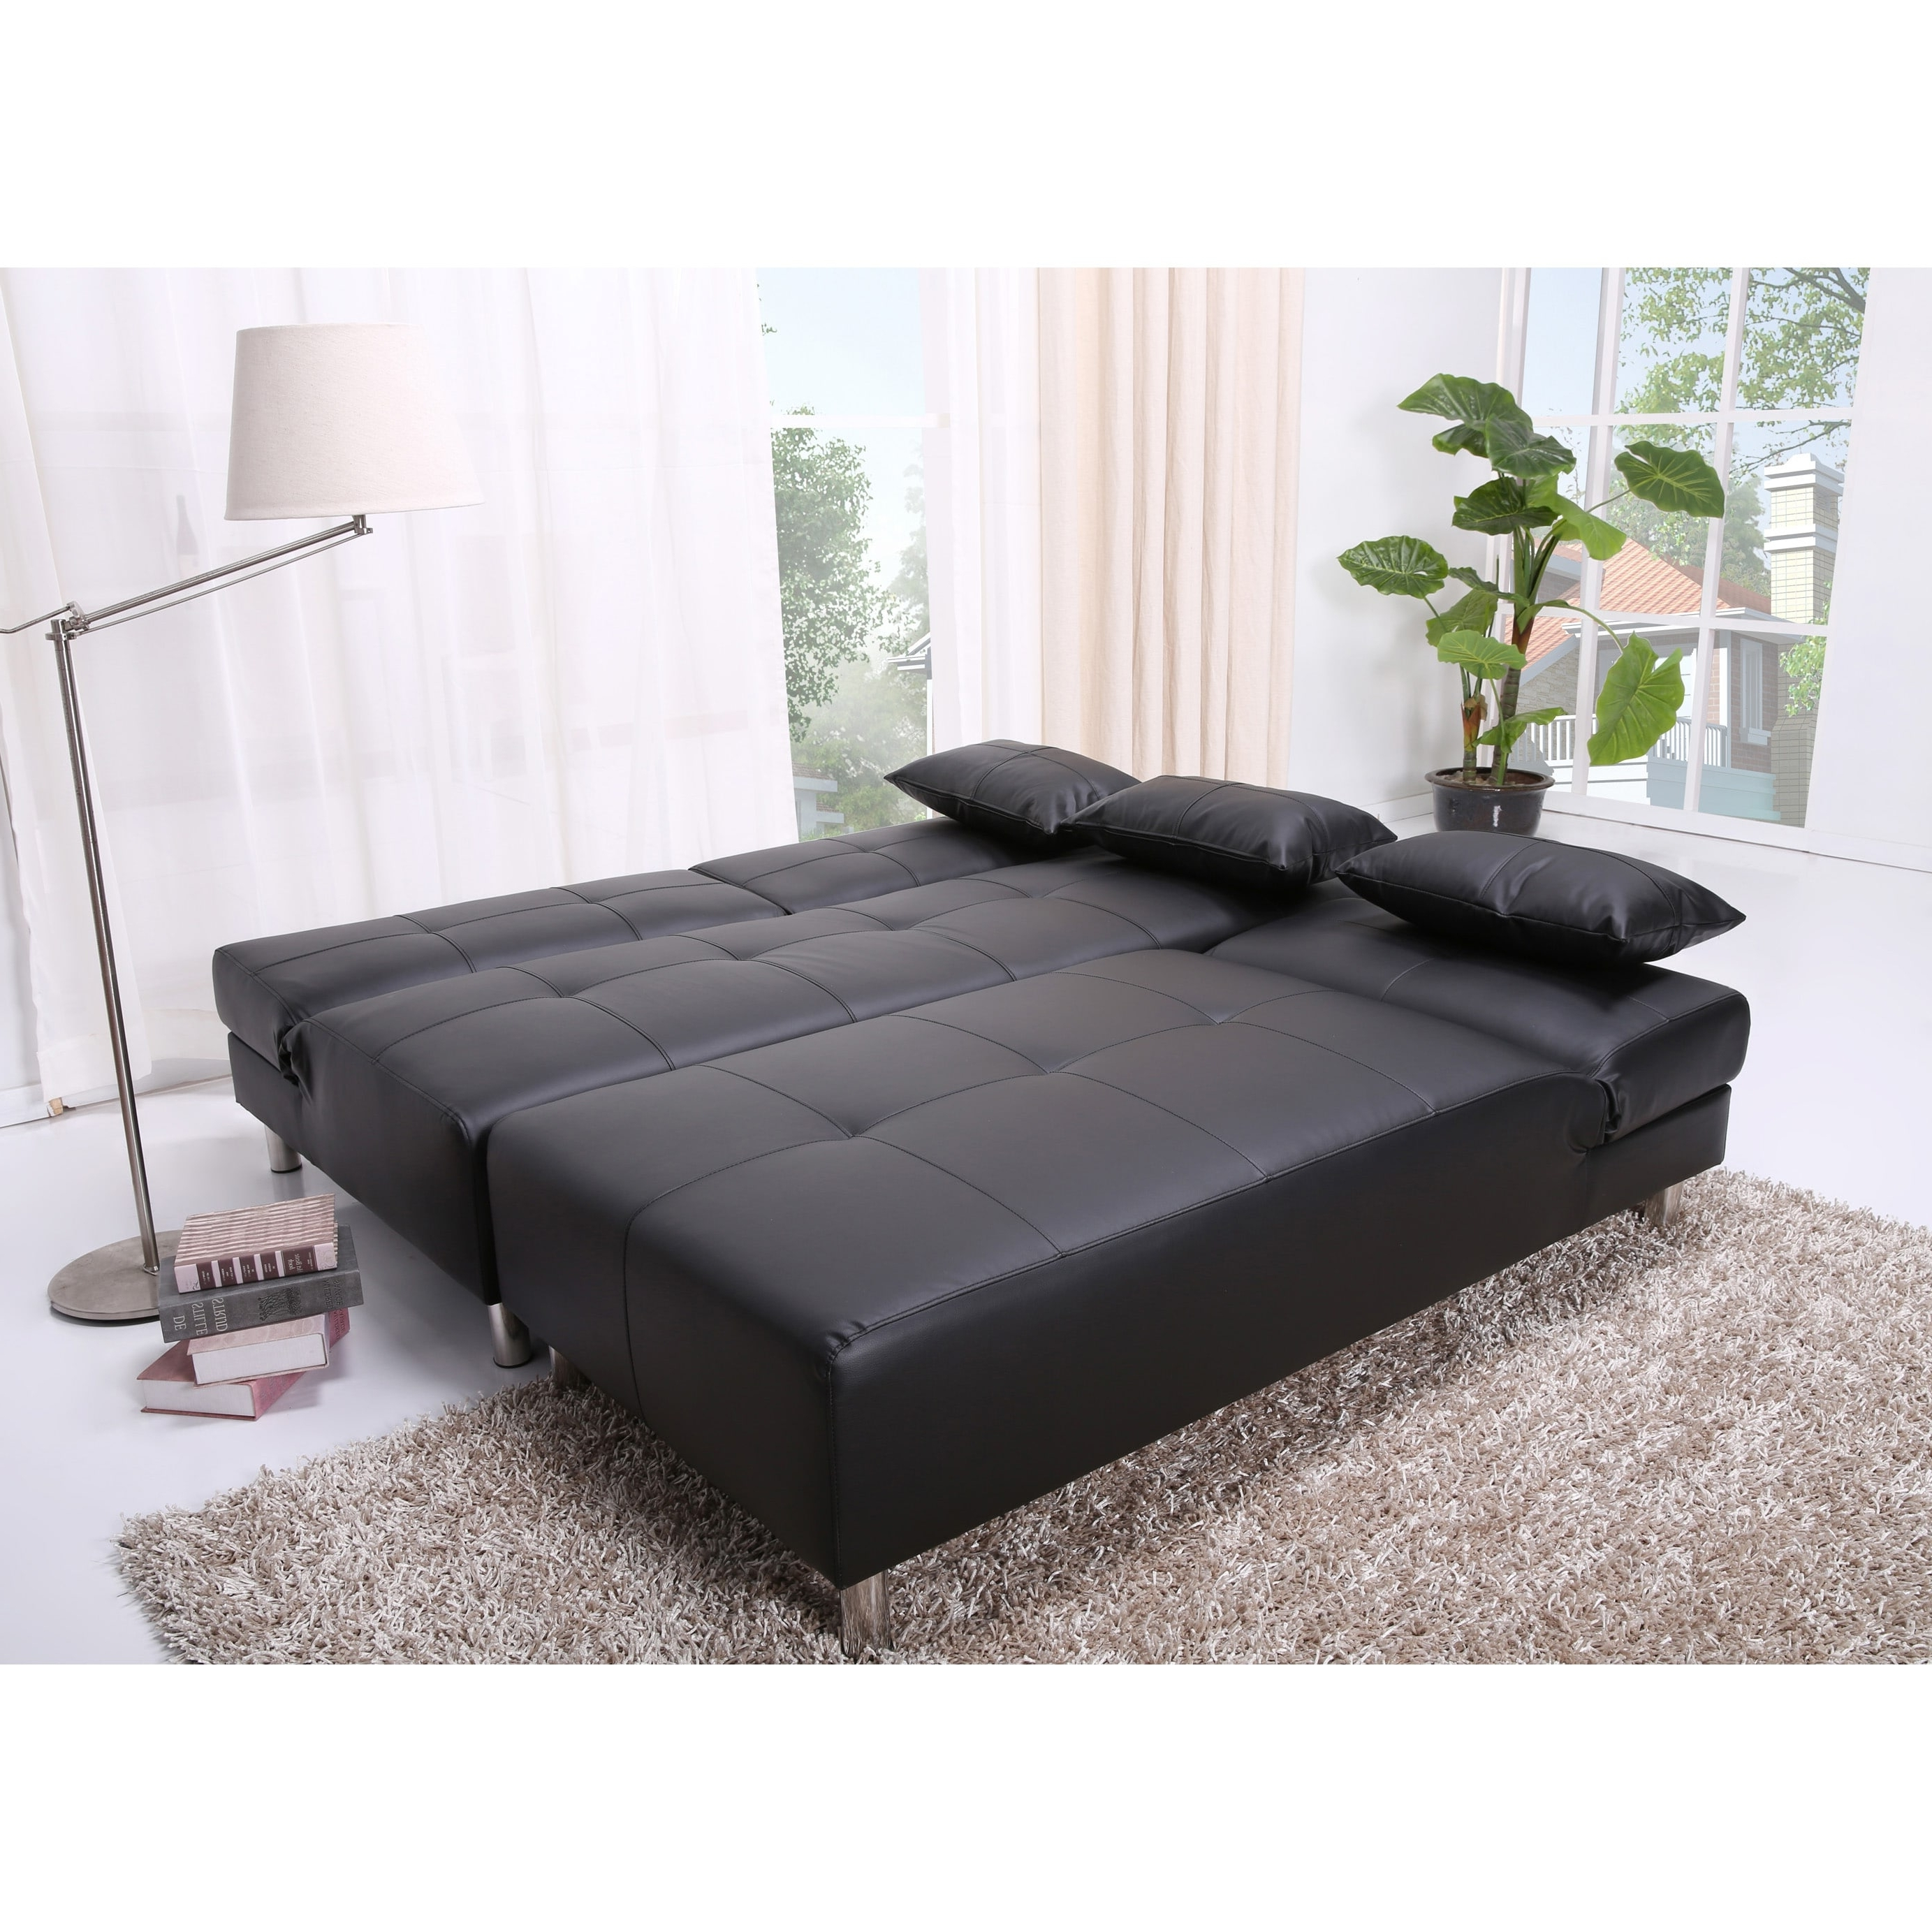 Sectional Sofas In Atlanta Within Most Up To Date Atlanta Black Faux Leather Convertible Sectional Sofa Bed – Free (View 15 of 20)